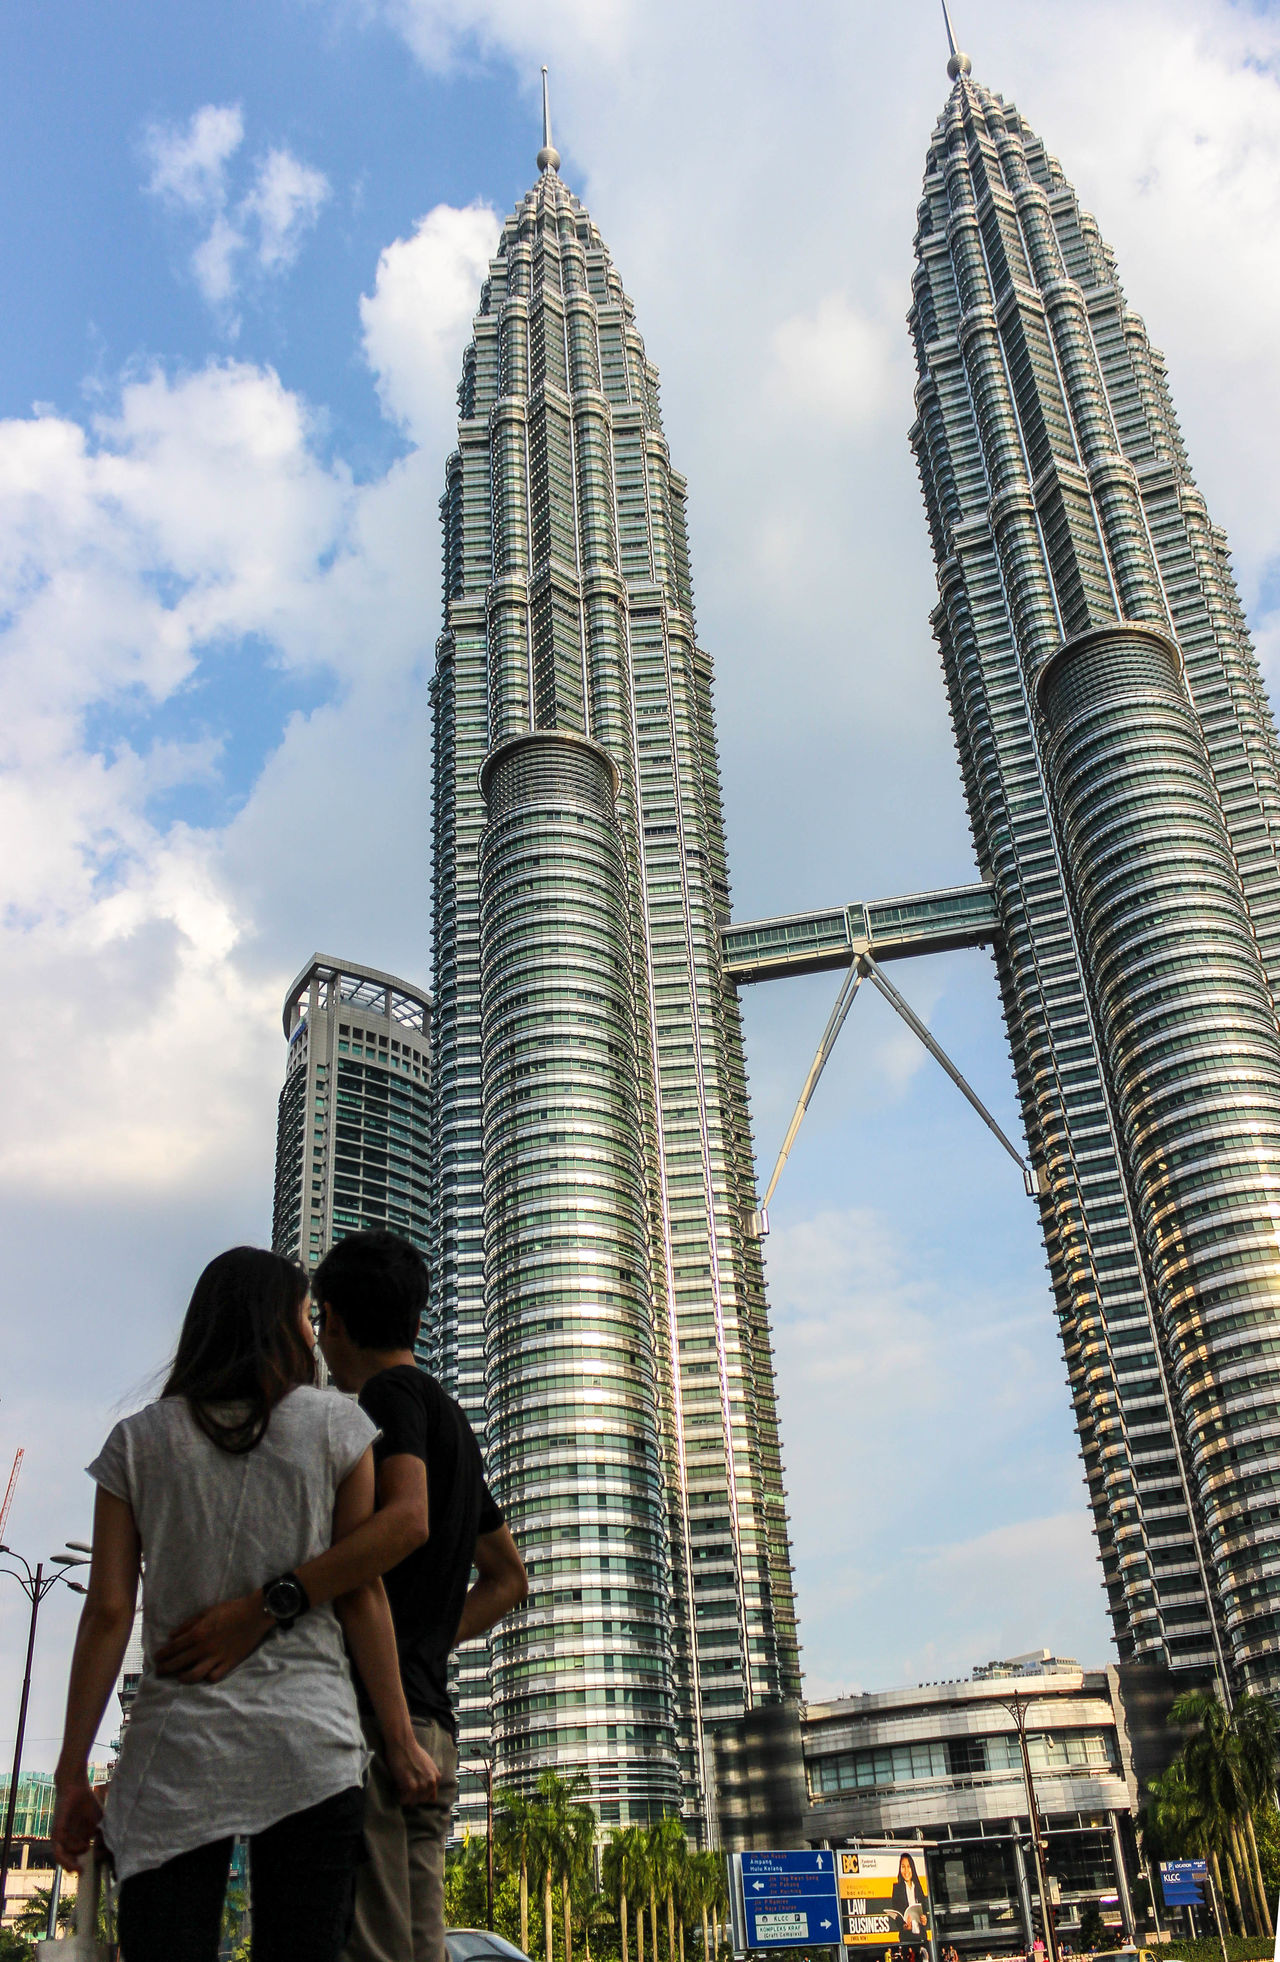 People And Places Building Exterior Built Structure Architecture Skyscraper Tower Tall - High Sky Lifestyles City Modern Outdoors Day Cloud - Sky KLCC Twin Towers KLCC❤❤ Klcc Couples❤❤❤ Couple Couples Shoot Couple Photography